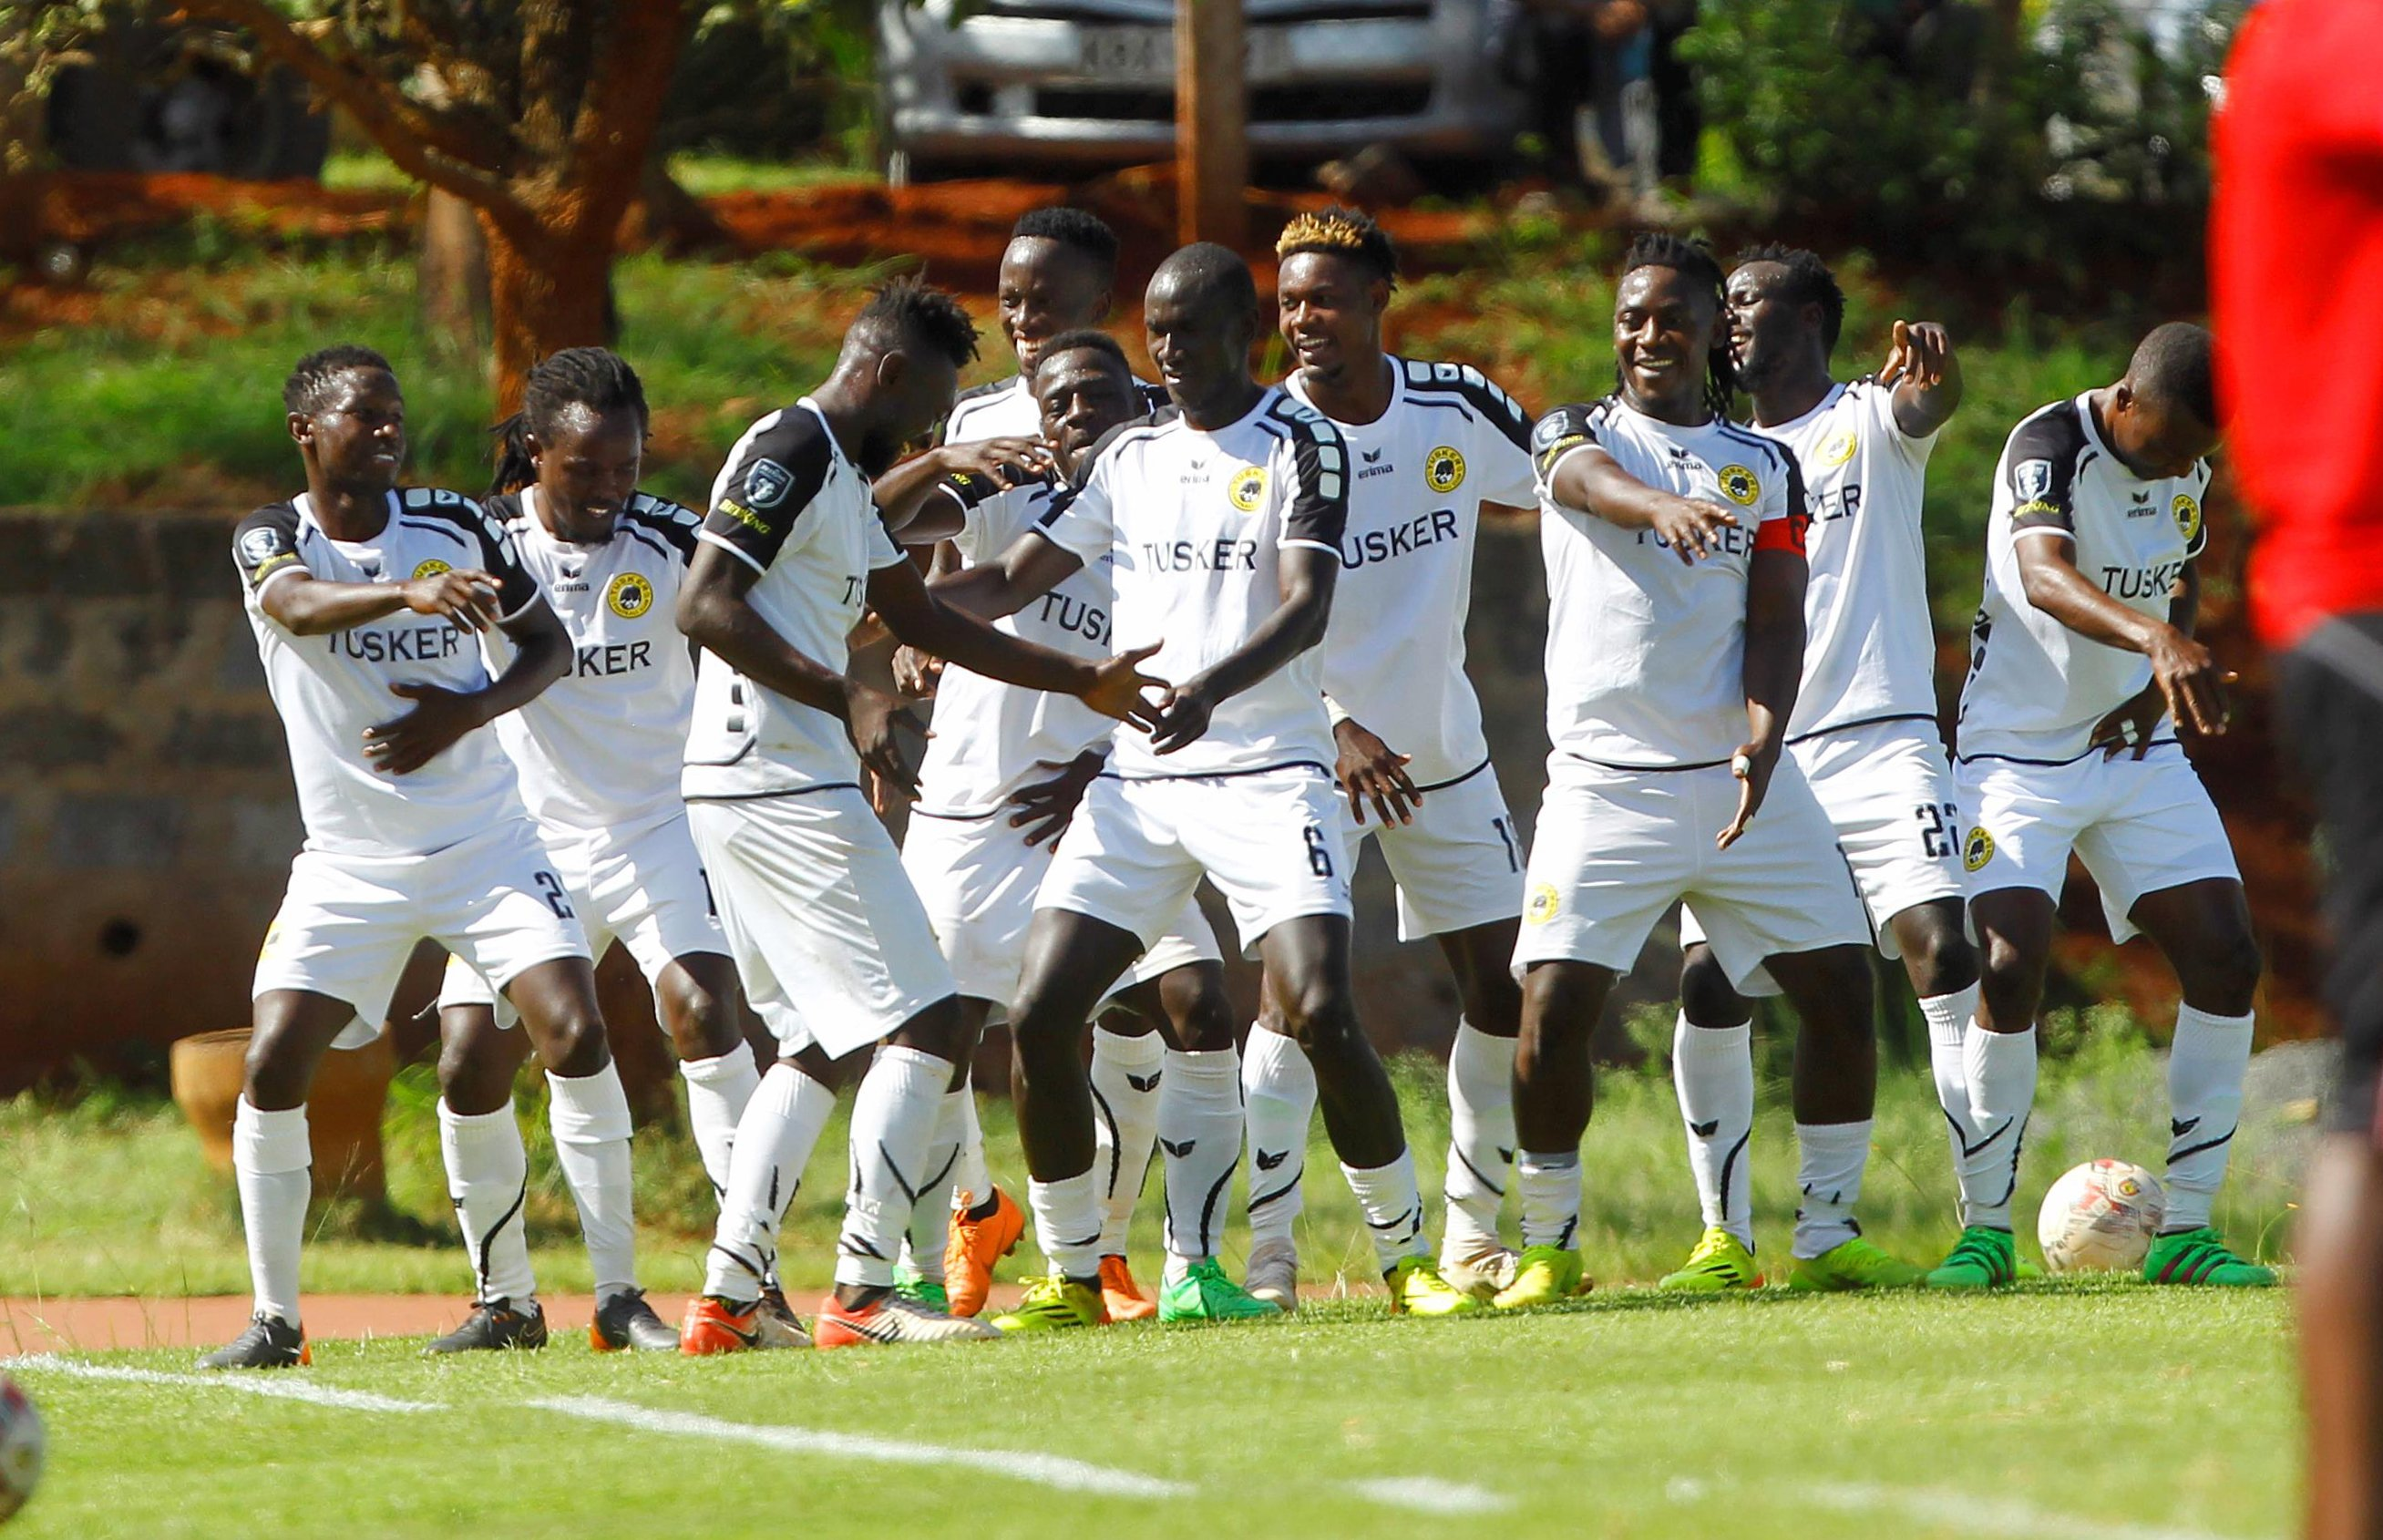 FKFPL Thursday wrap: Tusker thump Rangers as Sharks edge Vihiga